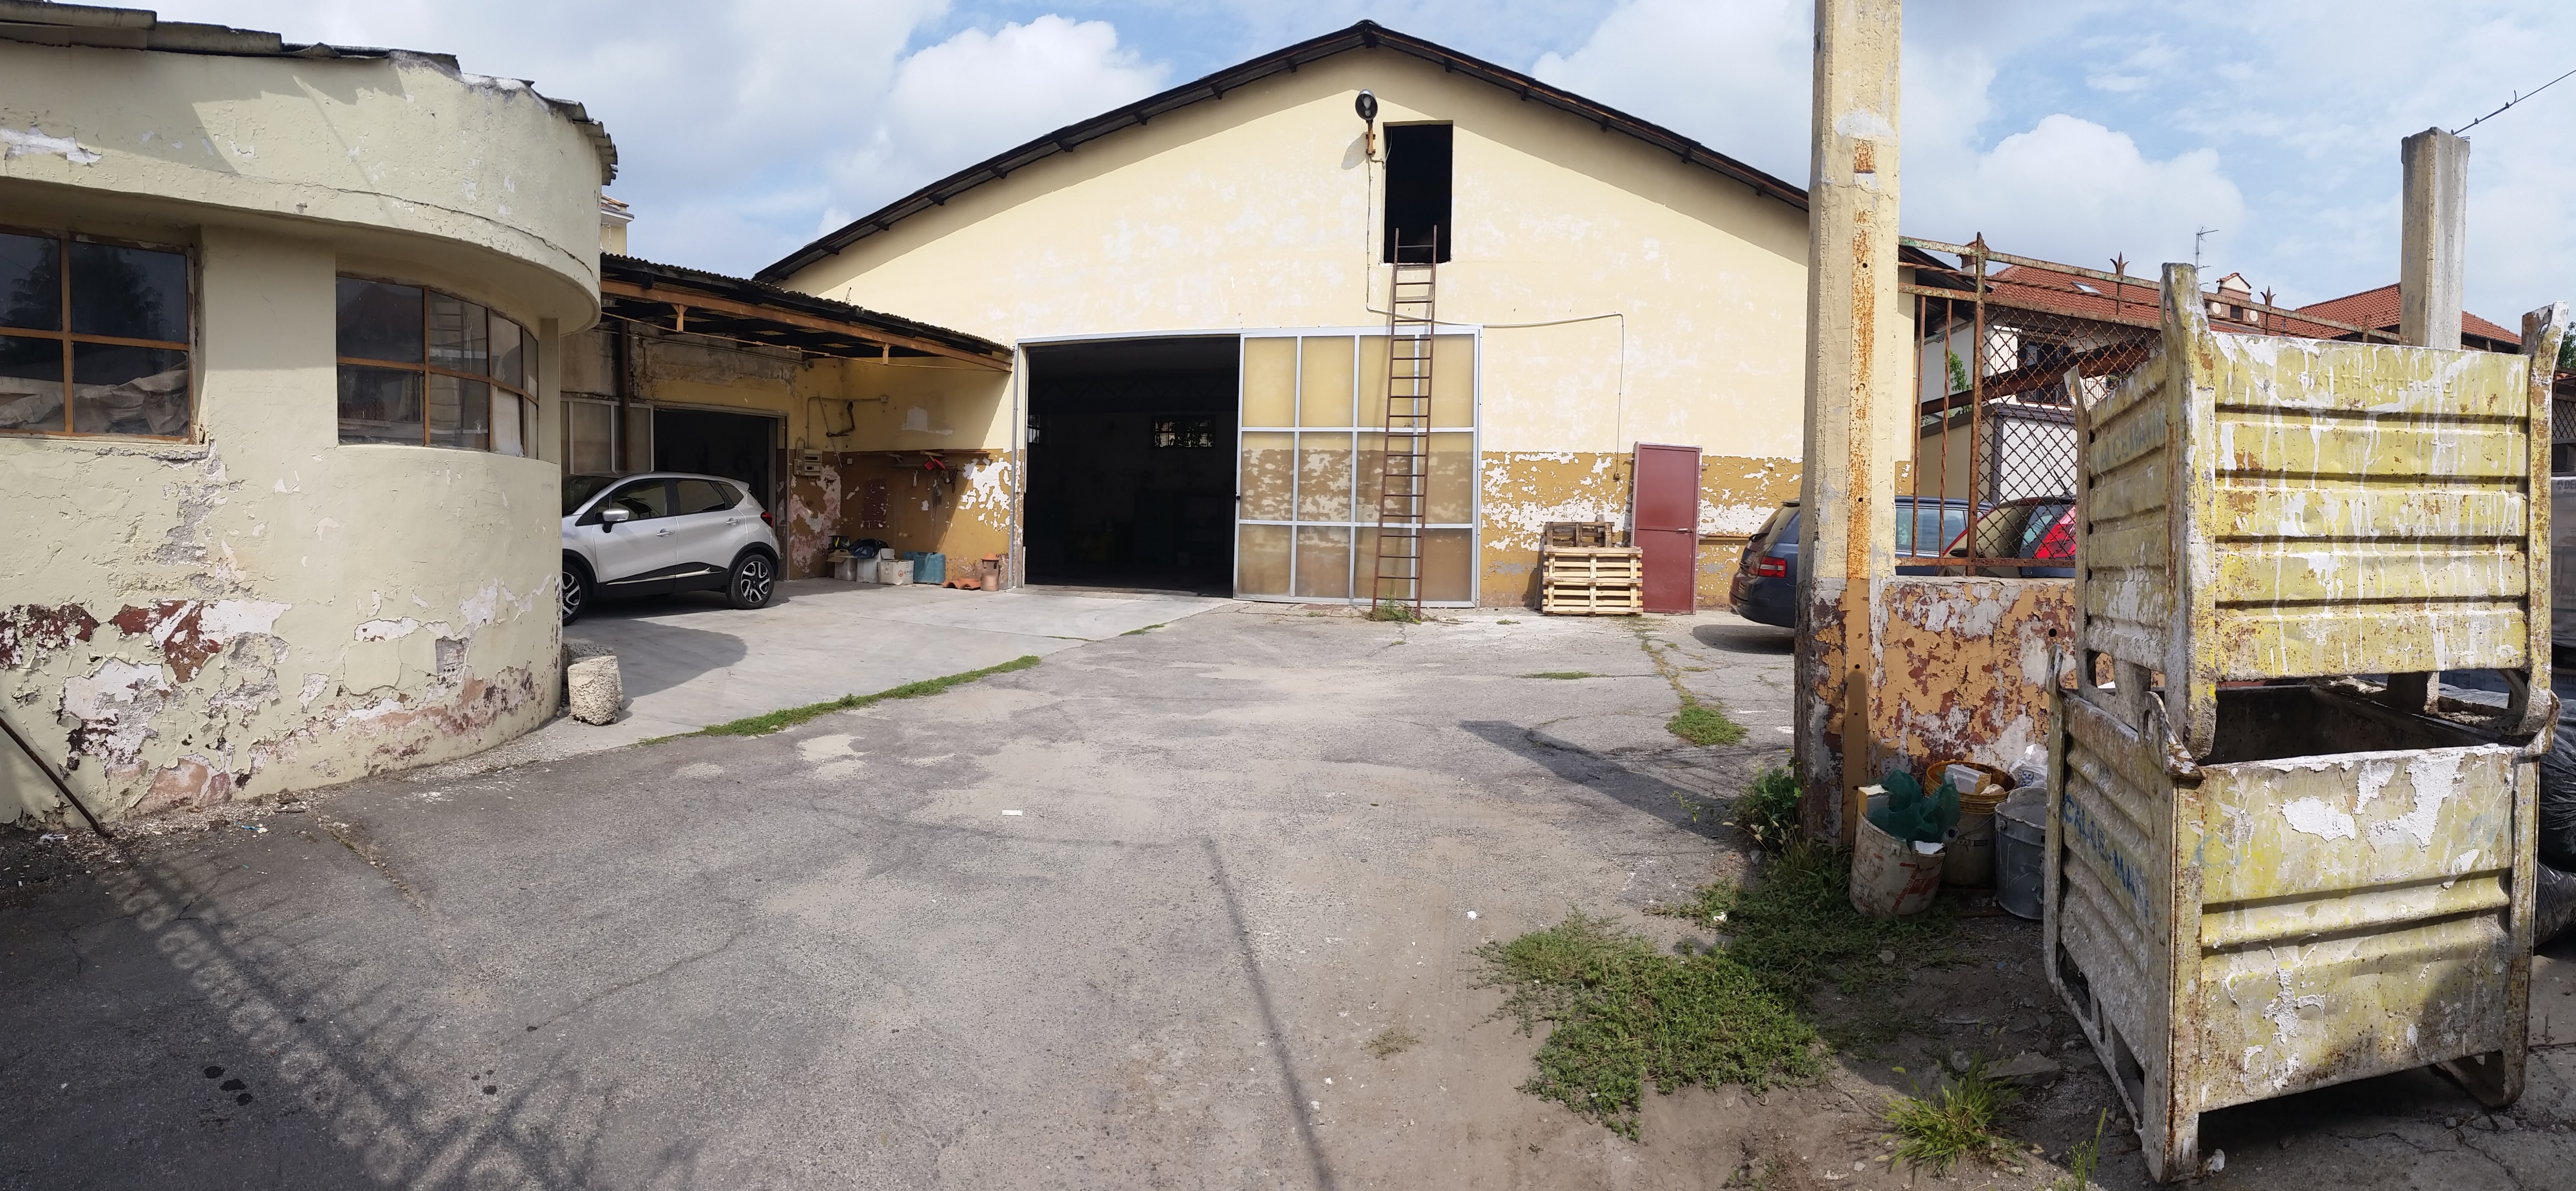 Caselle Torinese. Locale uso commerciale o terziario € 170.000